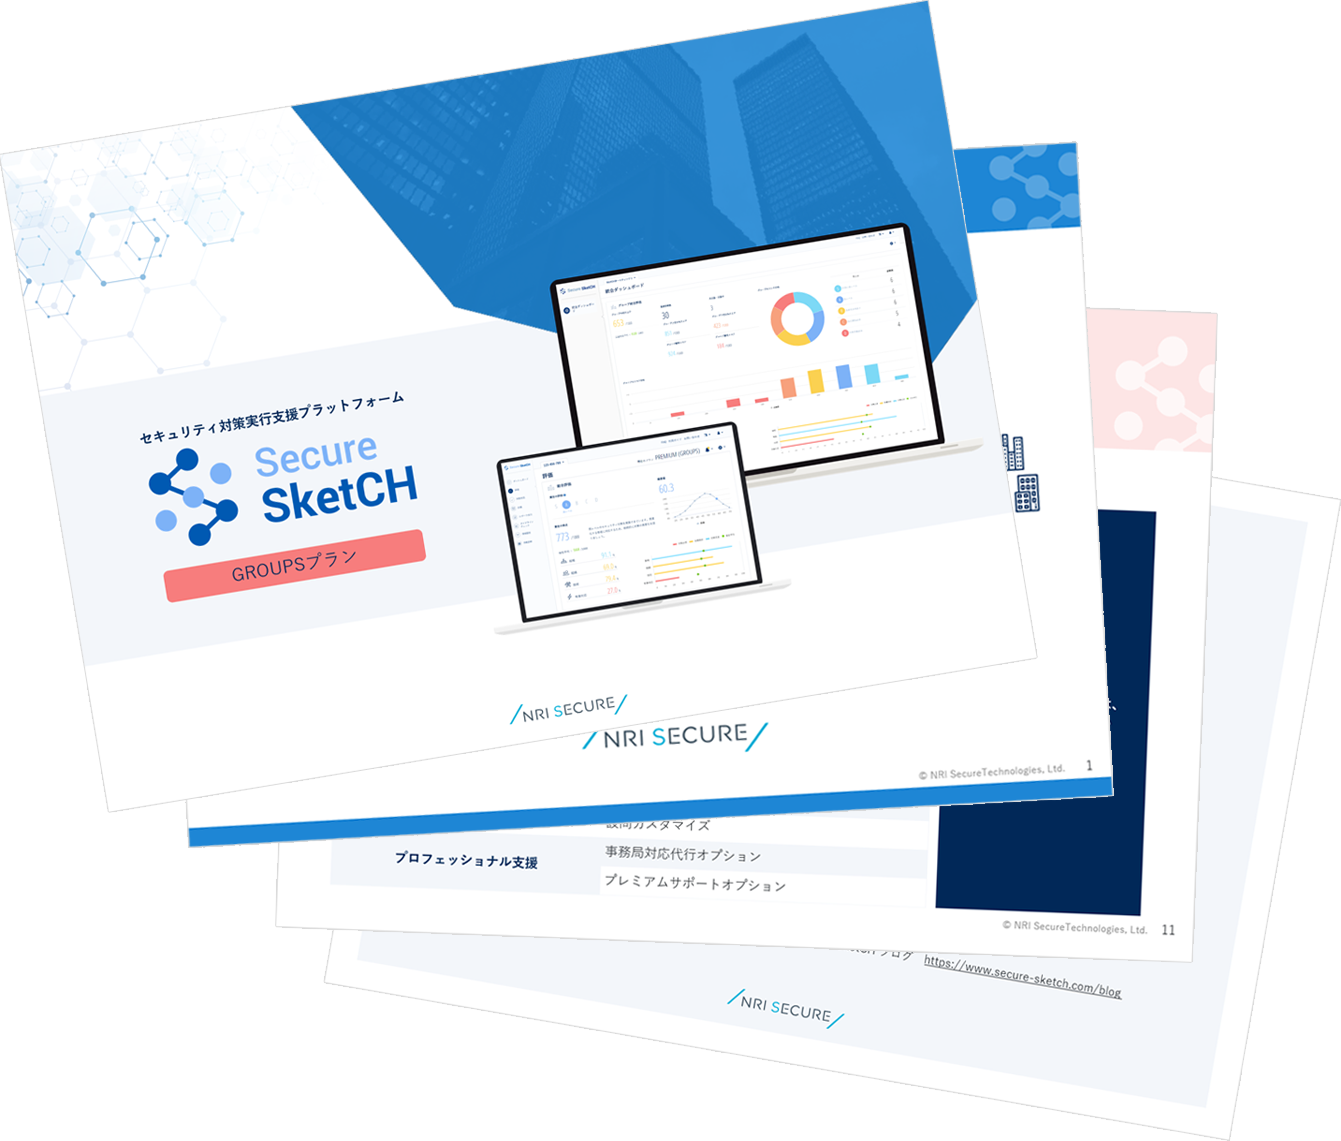 download_Secure_SketCH_groups-plan-explanation-material